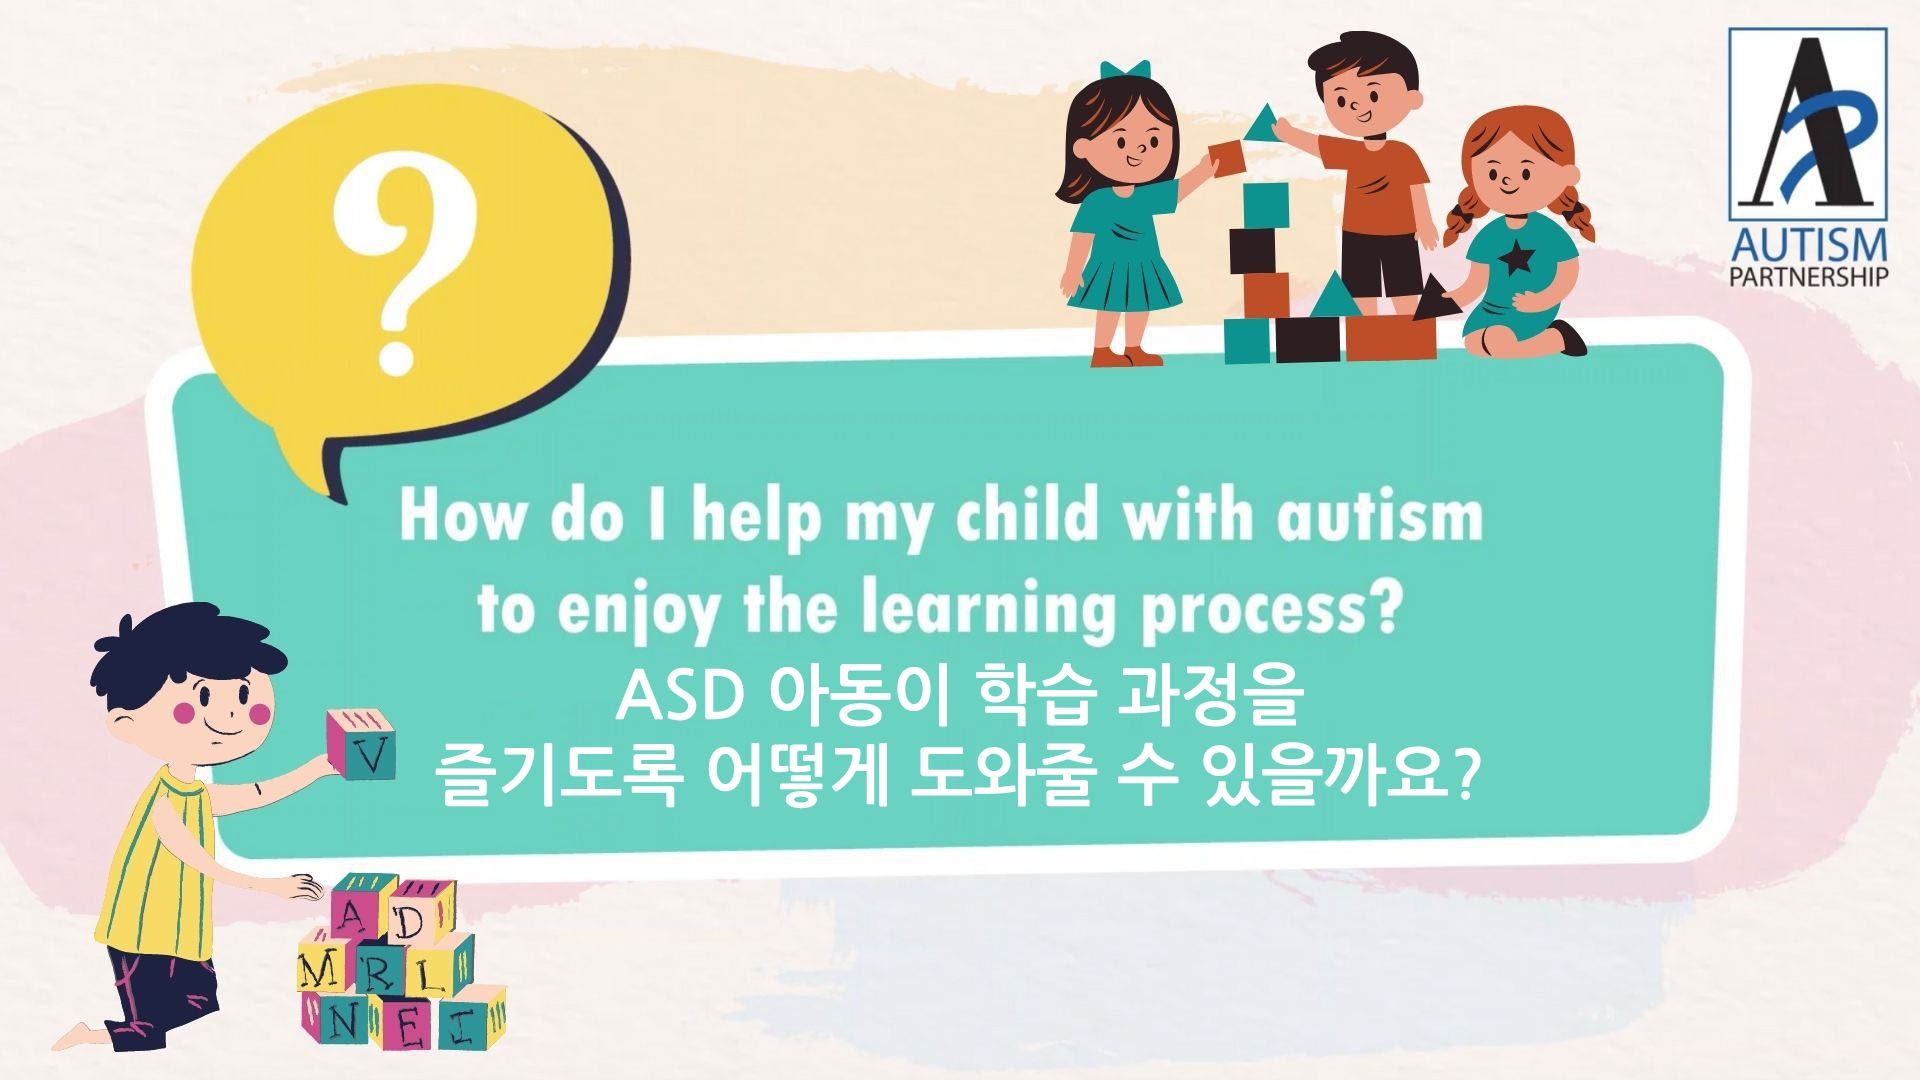 how-do-i-help-my-child-with-autism-to-enjoy-the-learning-process